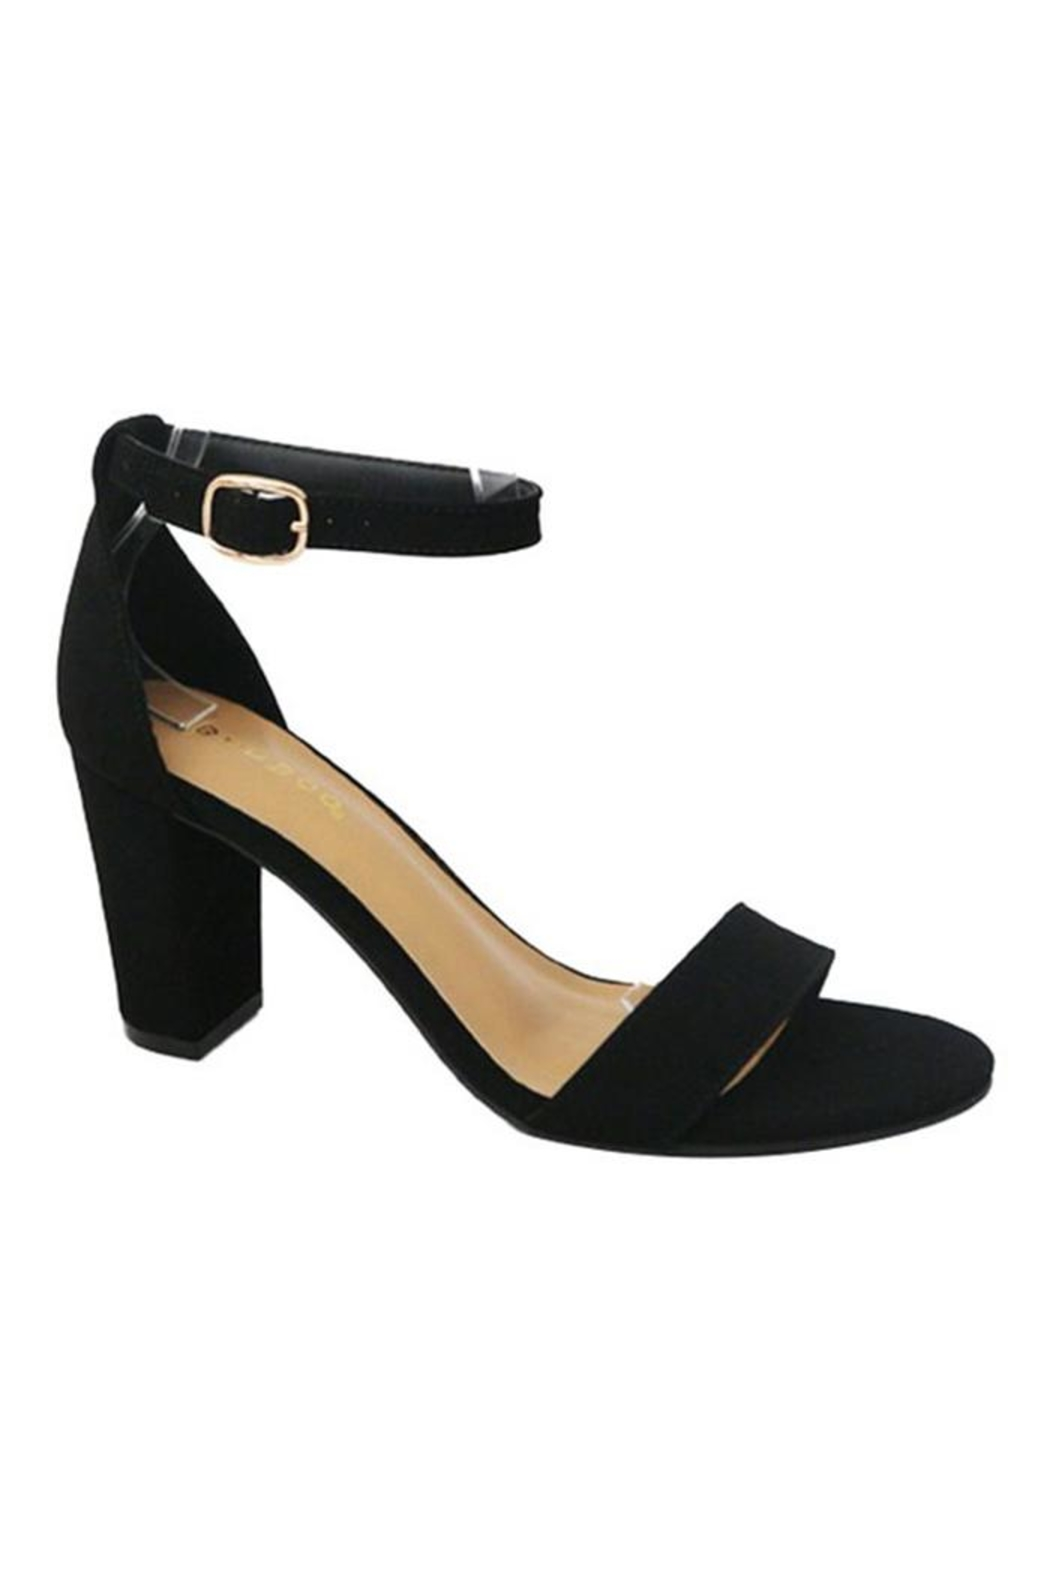 ab952c6fa20 Bamboo Ankle Strap Heel from New York by Dor L Dor — Shoptiques